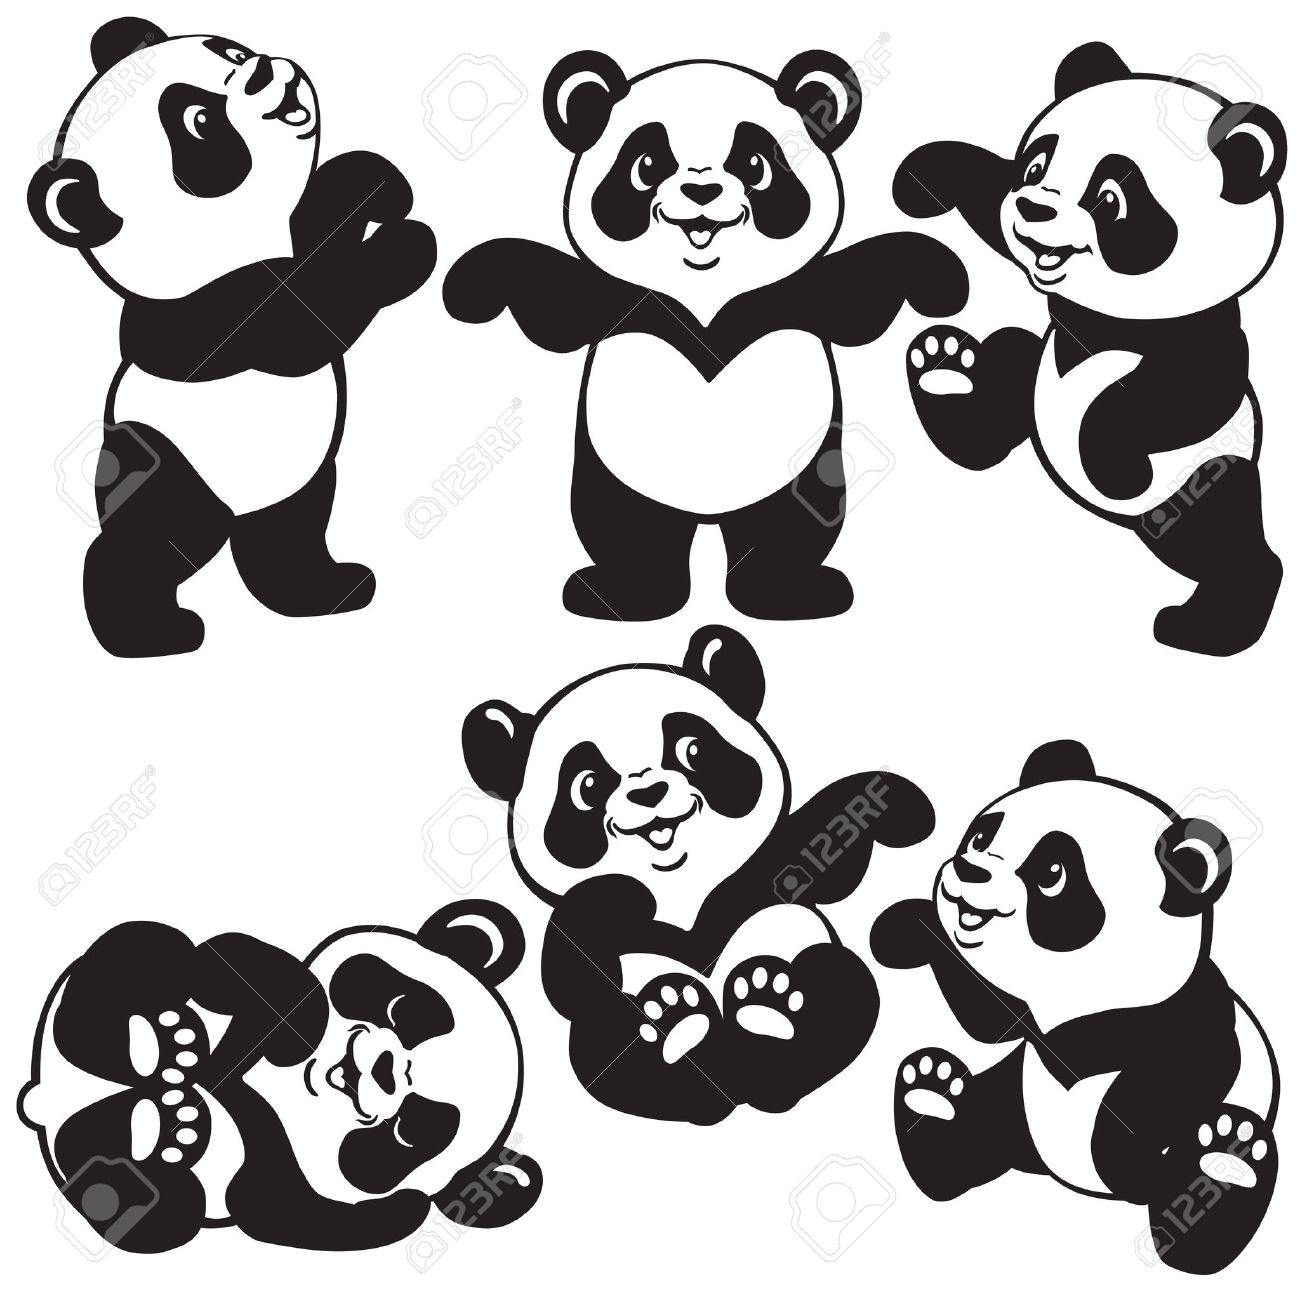 set with cartoon panda bear , black and white images for little kids - 36063395